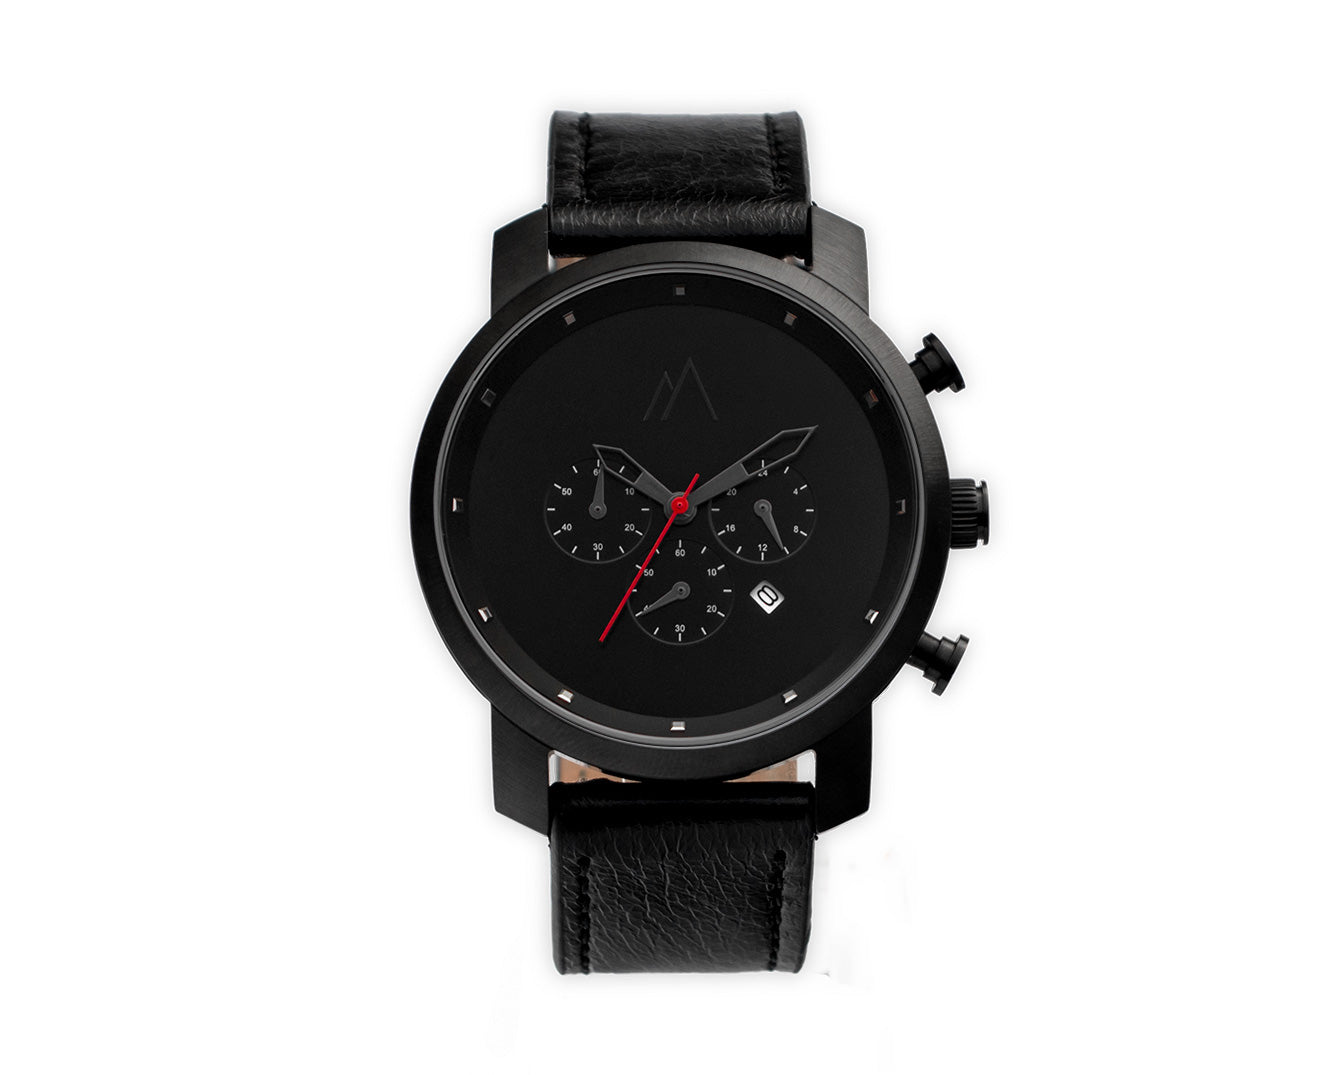 Quartz chronograph date watch black and red